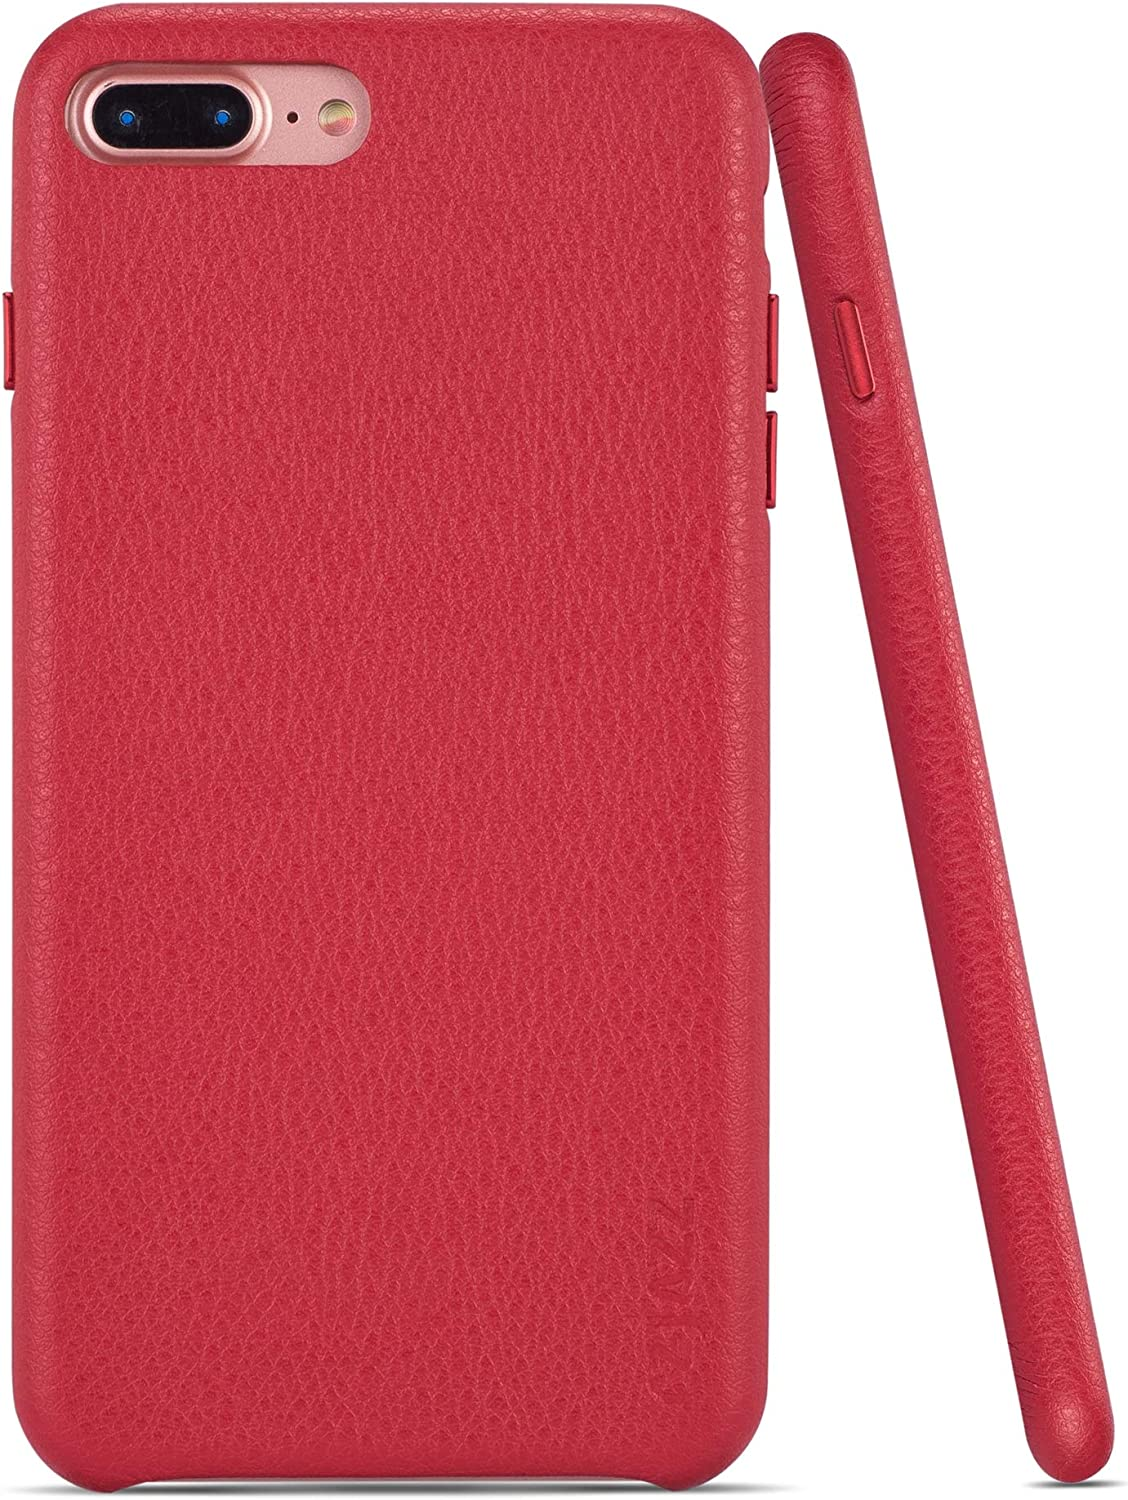 rejazz iPhone 7 Plus Case iPhone 8 Plus Case Anti-Scratch iPhone 7 Plus Cover iPhone 8 Plus Cover Genuine Leather Apple iPhone Cases for iPhone 7/8 Plus (5.5 Inch) (Brown)(Red)